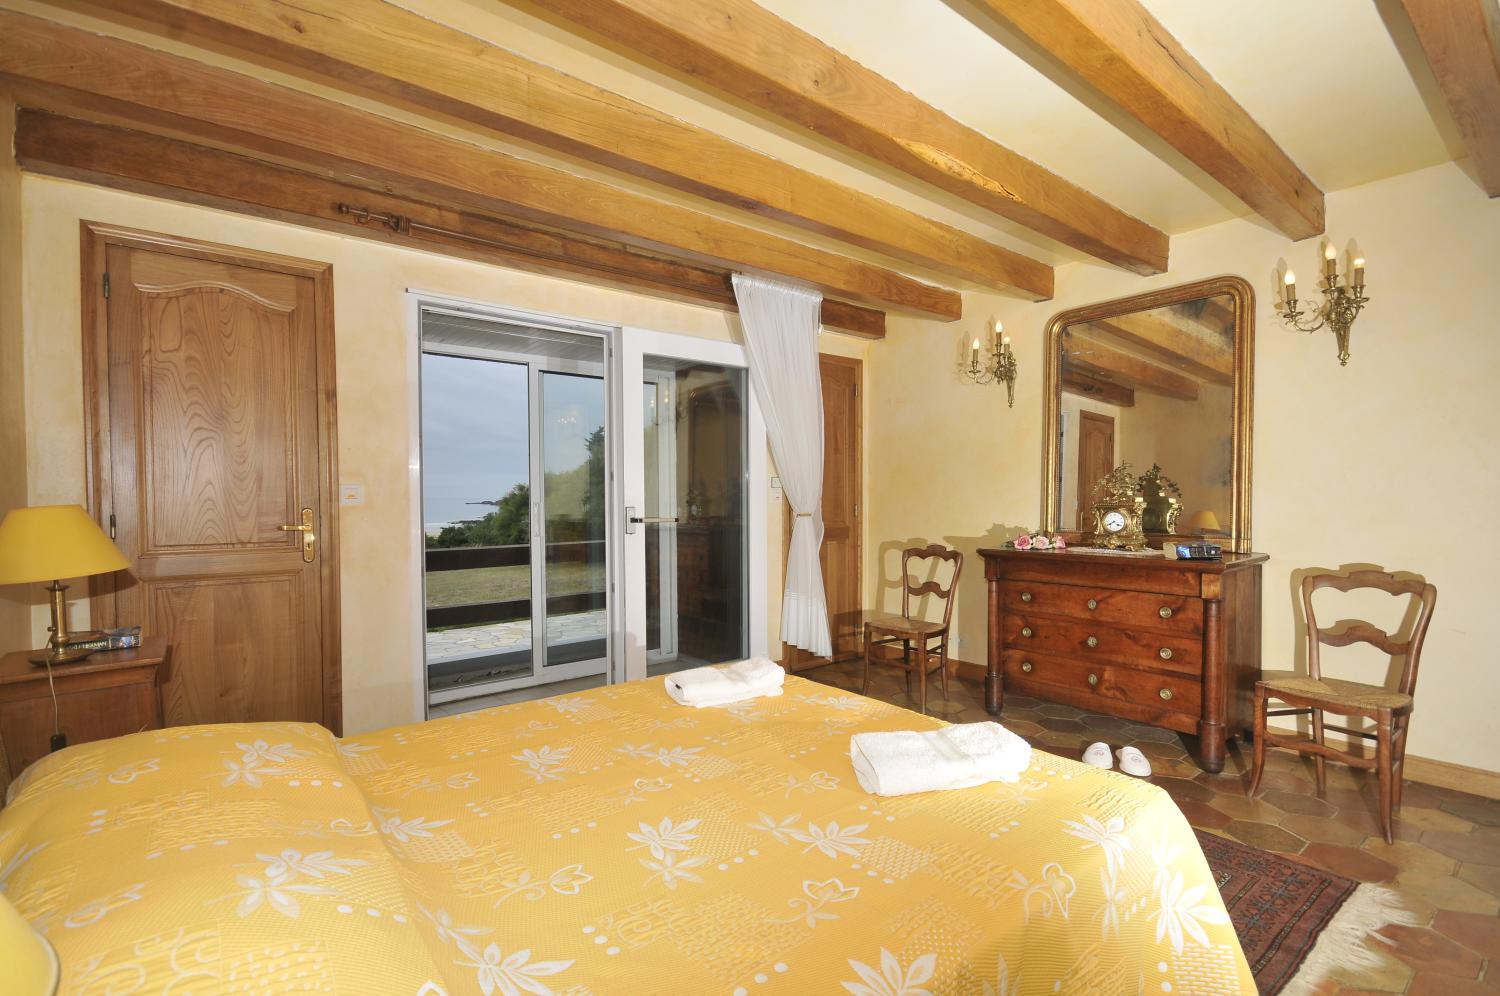 Bedroom 1, Cottage on the Beach, Le Pouldu, Brittany.